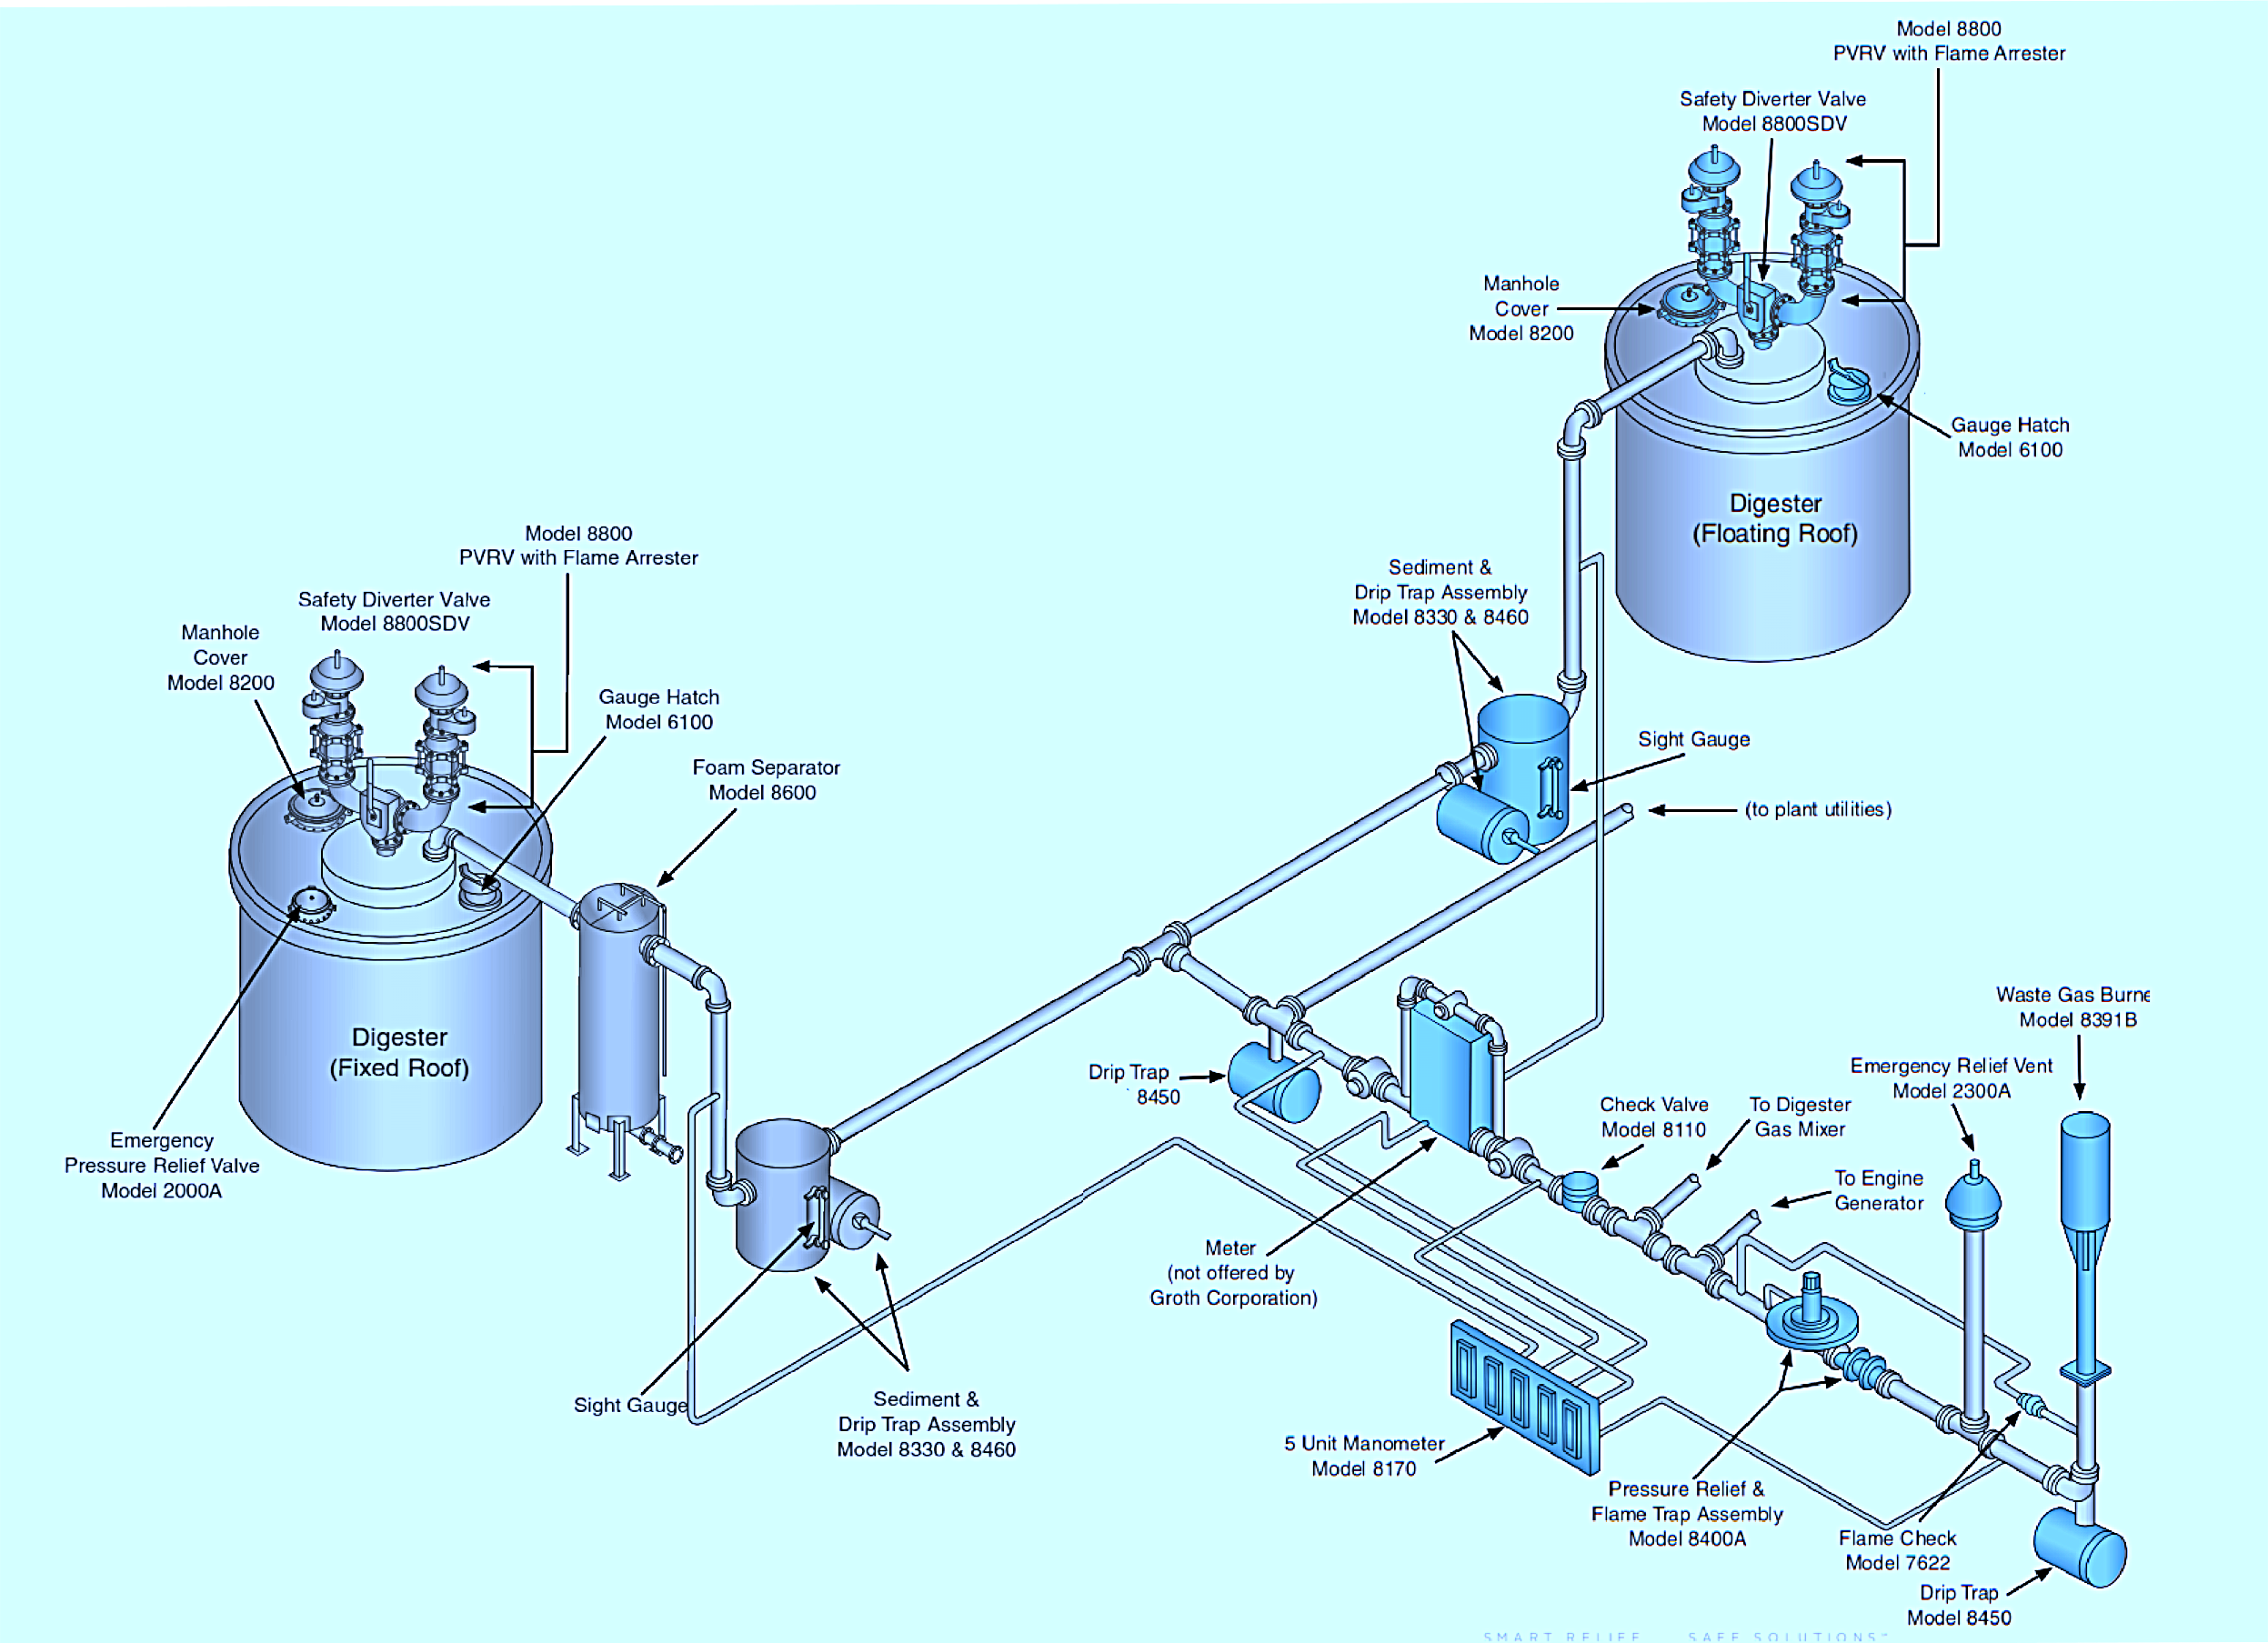 Bio Gas Control And Safety Equipment Systems Assentech Limited General Vacuum Diagram This Schematic Is For Presentation Purposes Only Not Intended To Represent A Specific Design Please Contact Us Complete Product